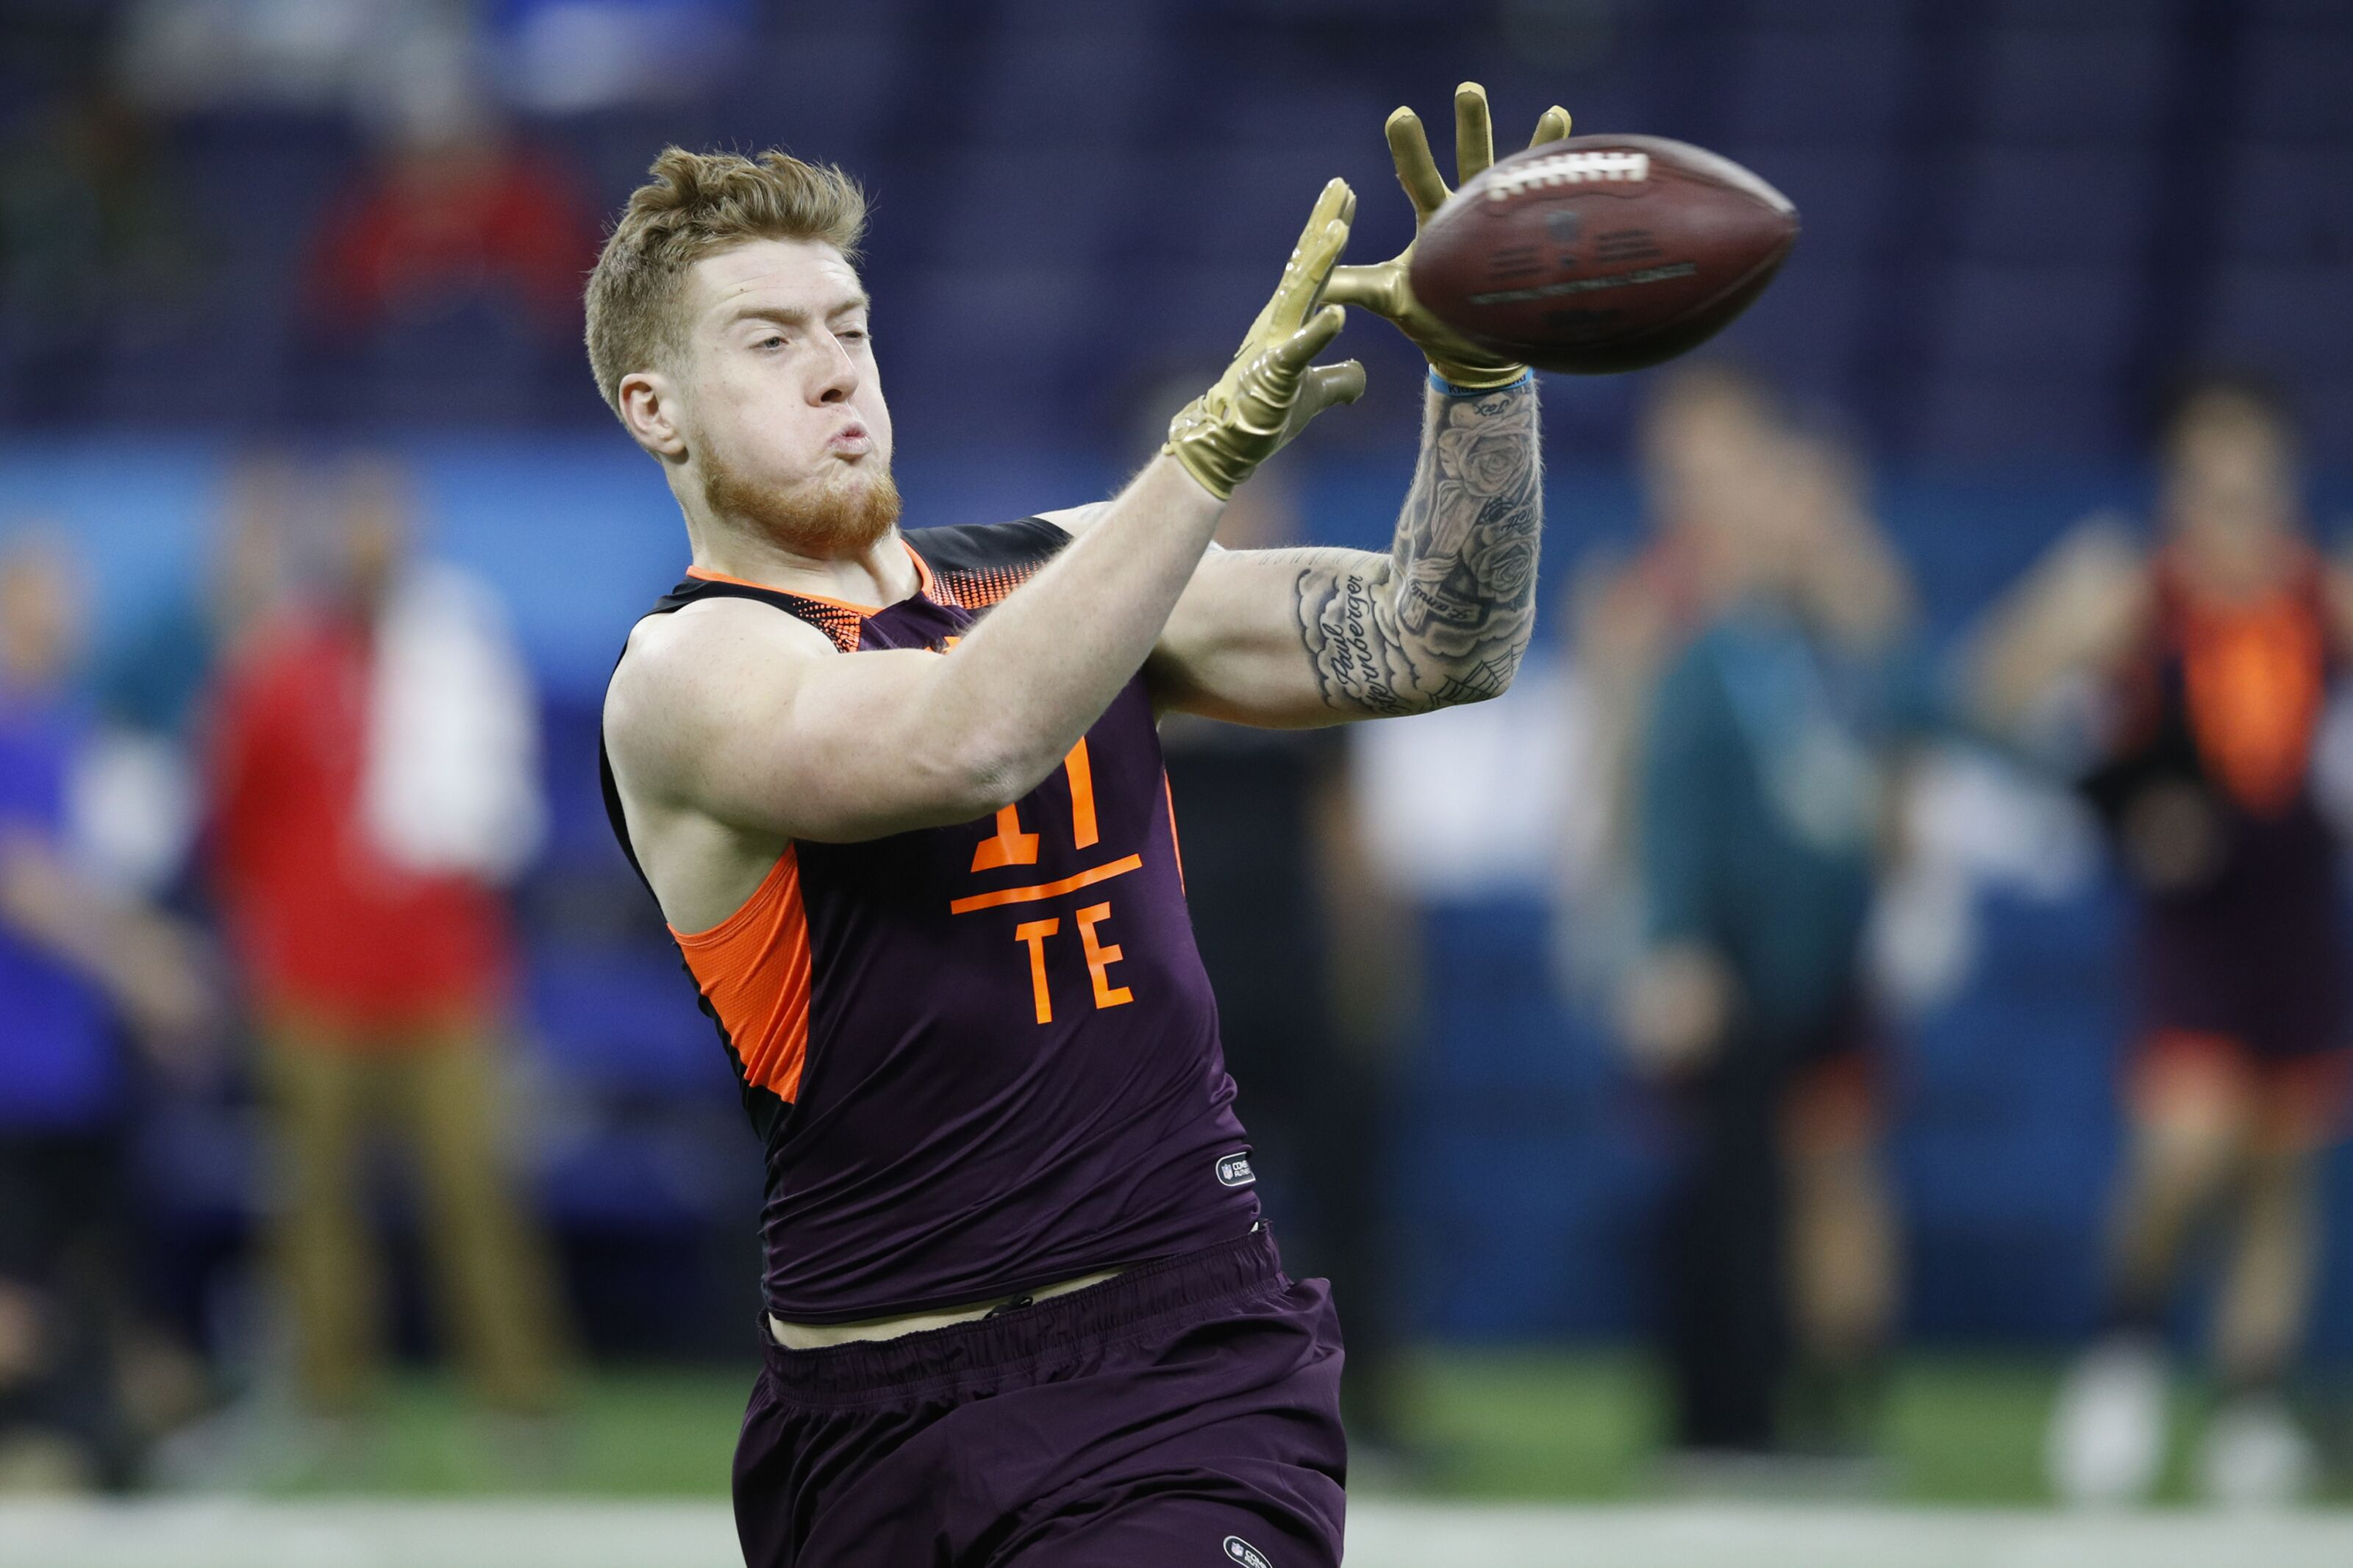 Texas A&M football: Jace Sternberger should start for Green Bay Packers